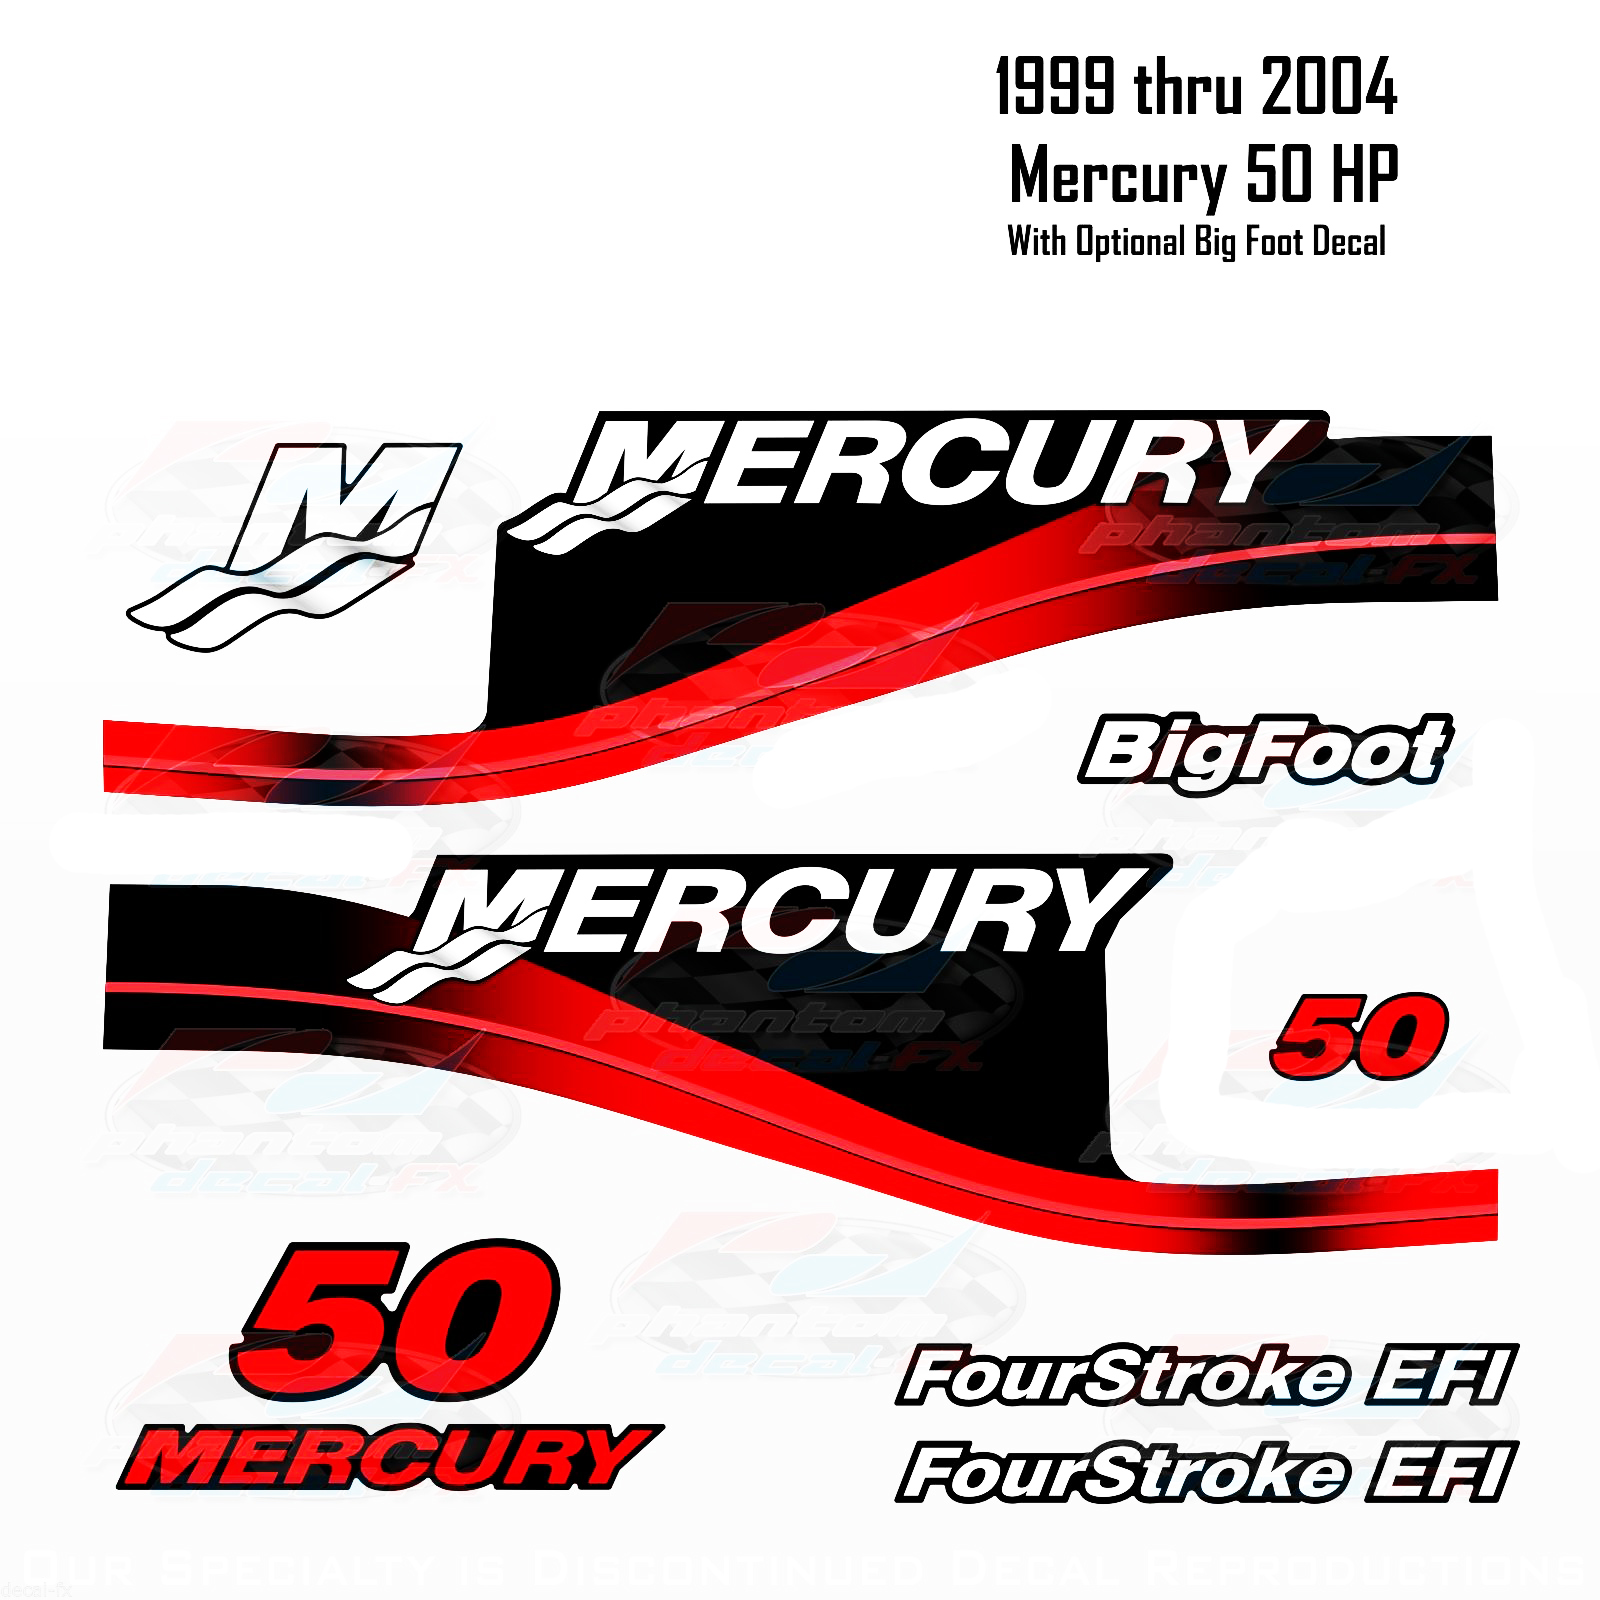 1999-2004 Mercury 50HP Red Decals Two & Four Stroke EFI BigFoot 11 pc Repro